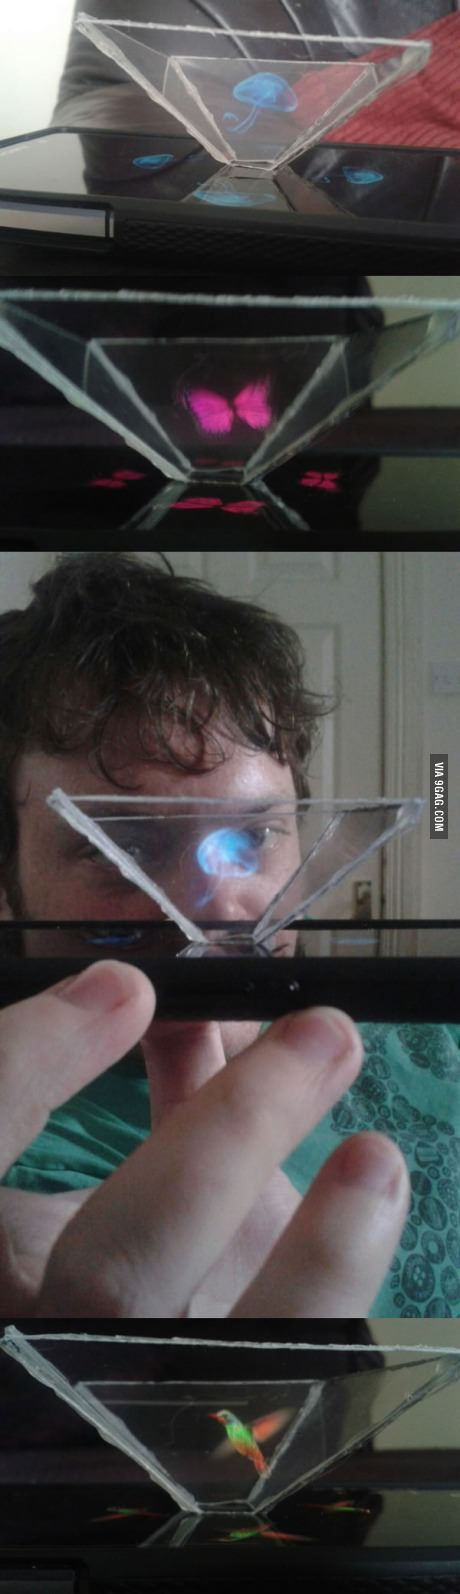 This guy tried DIY that 3D hologram phone device